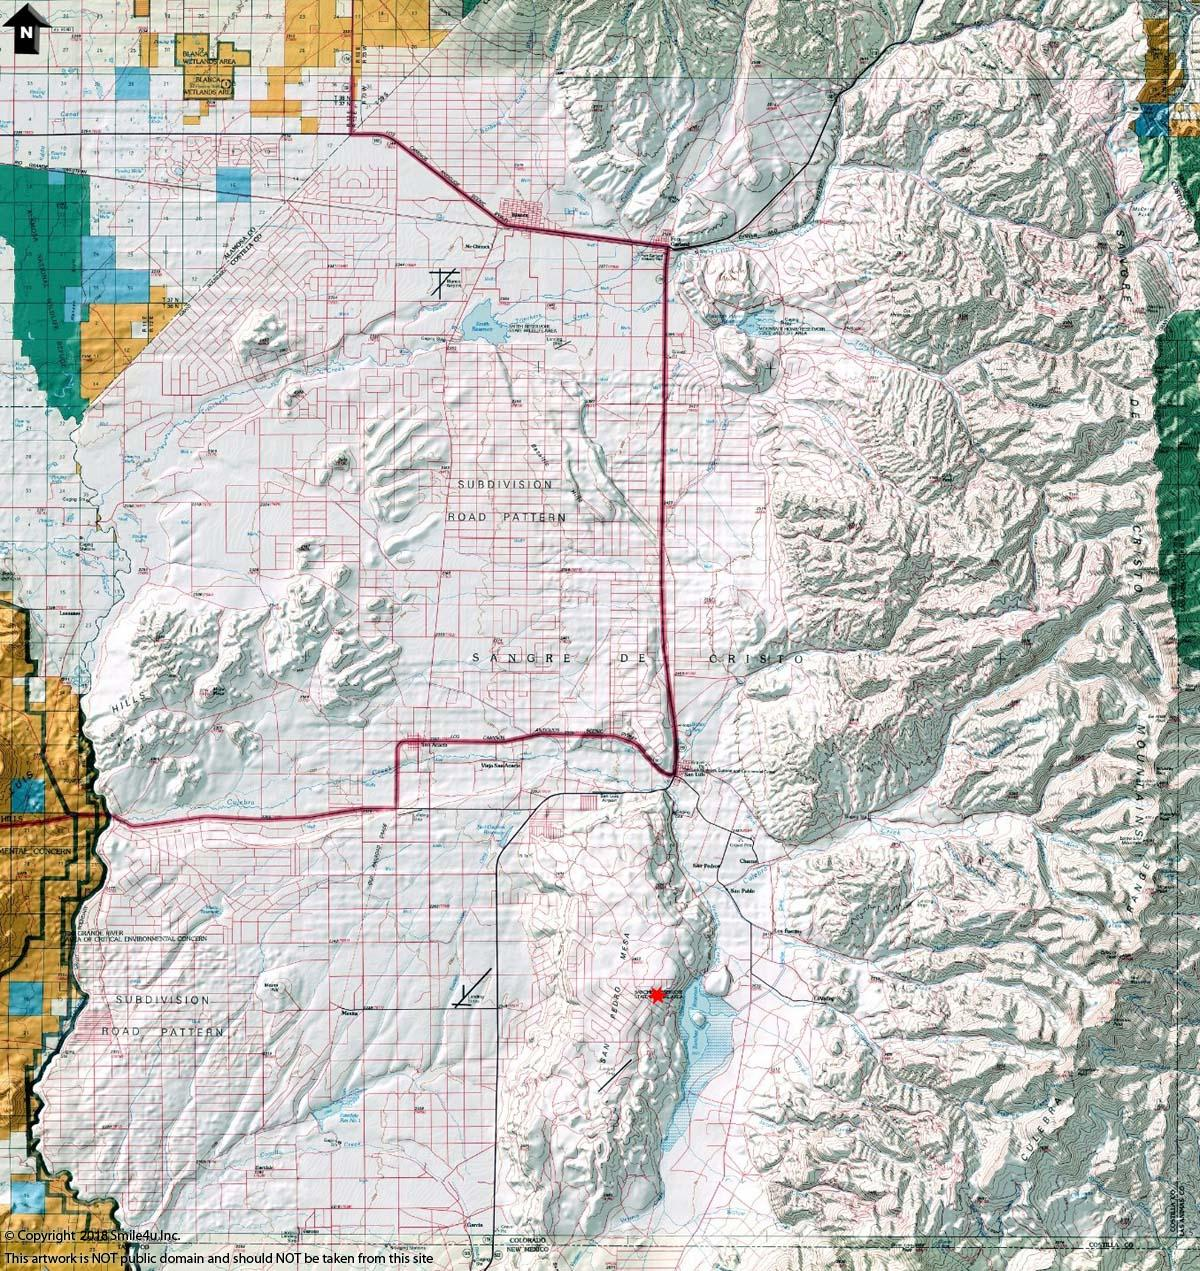 310832_watermarked_Costilla County BLM Map.jpg